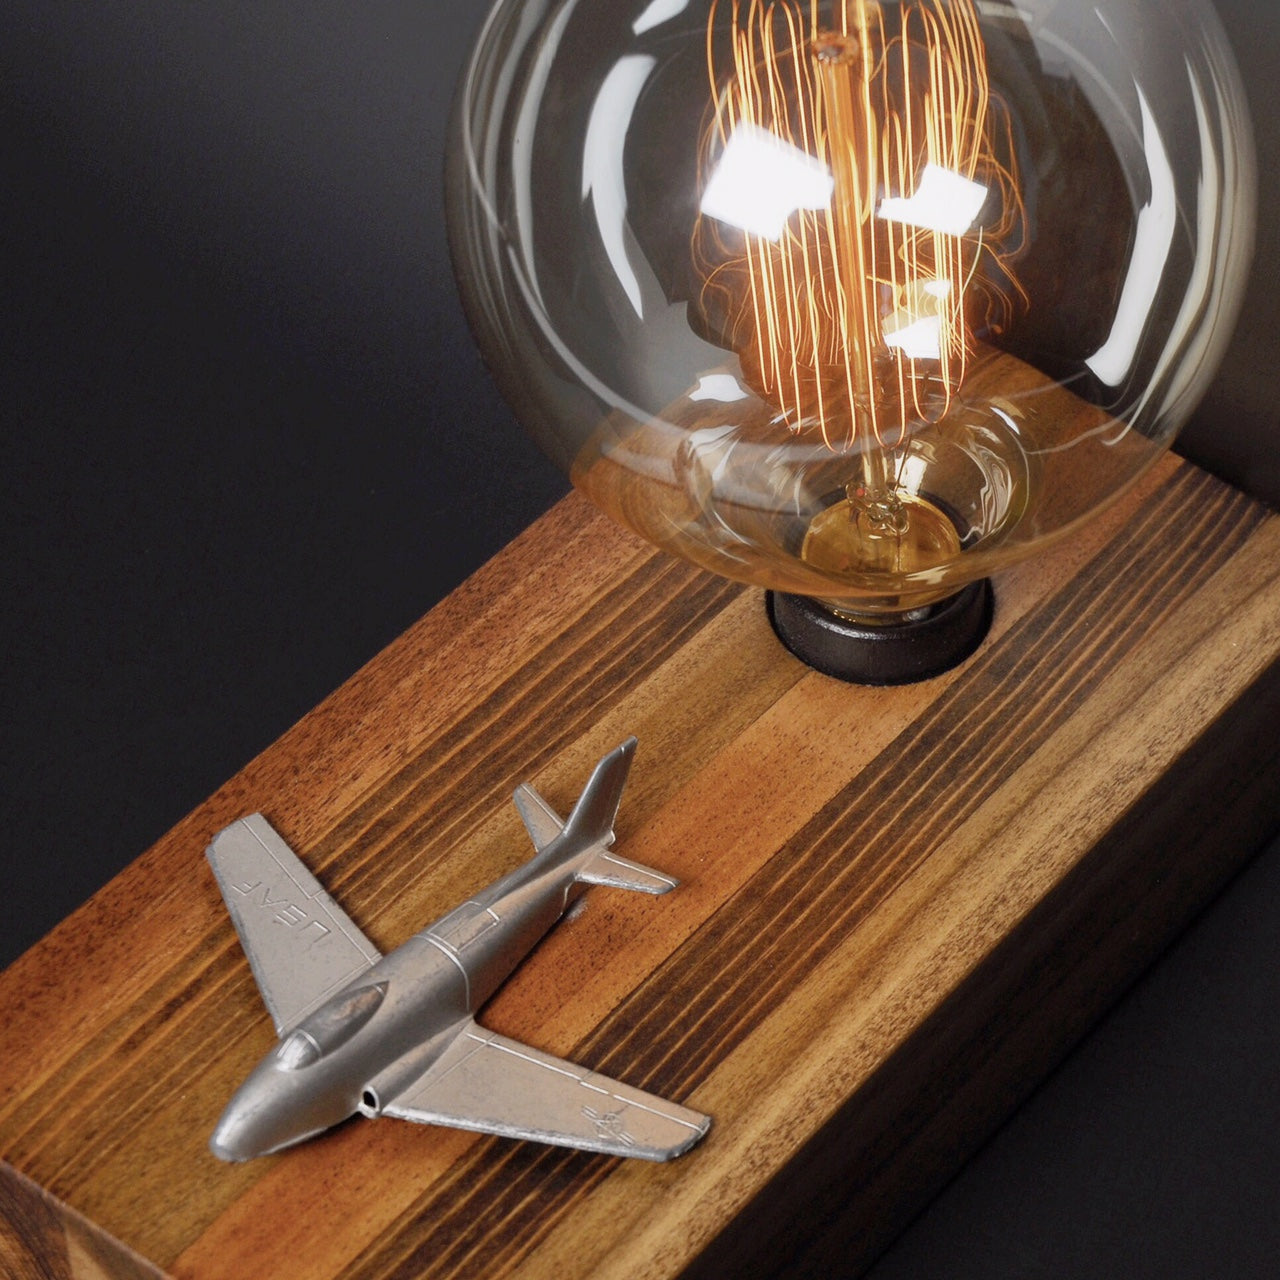 Touch Sensor Lamp - Vintage Airplane